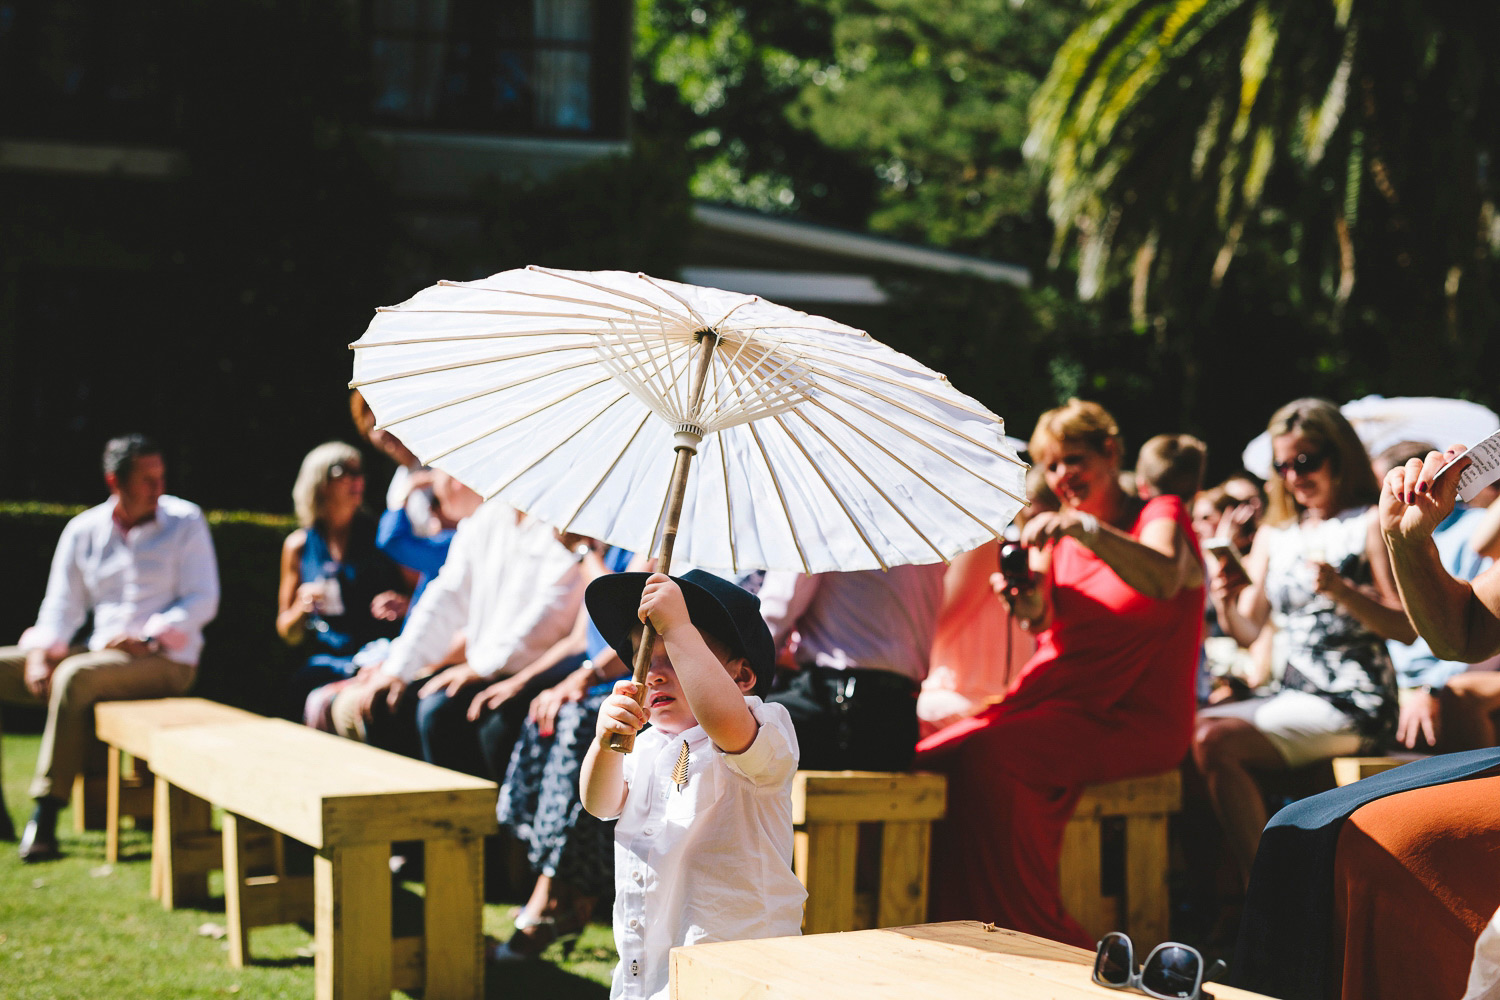 cape-town-wedding-photographer-western-cape-constansia-camilla-charlie-ray33.jpg